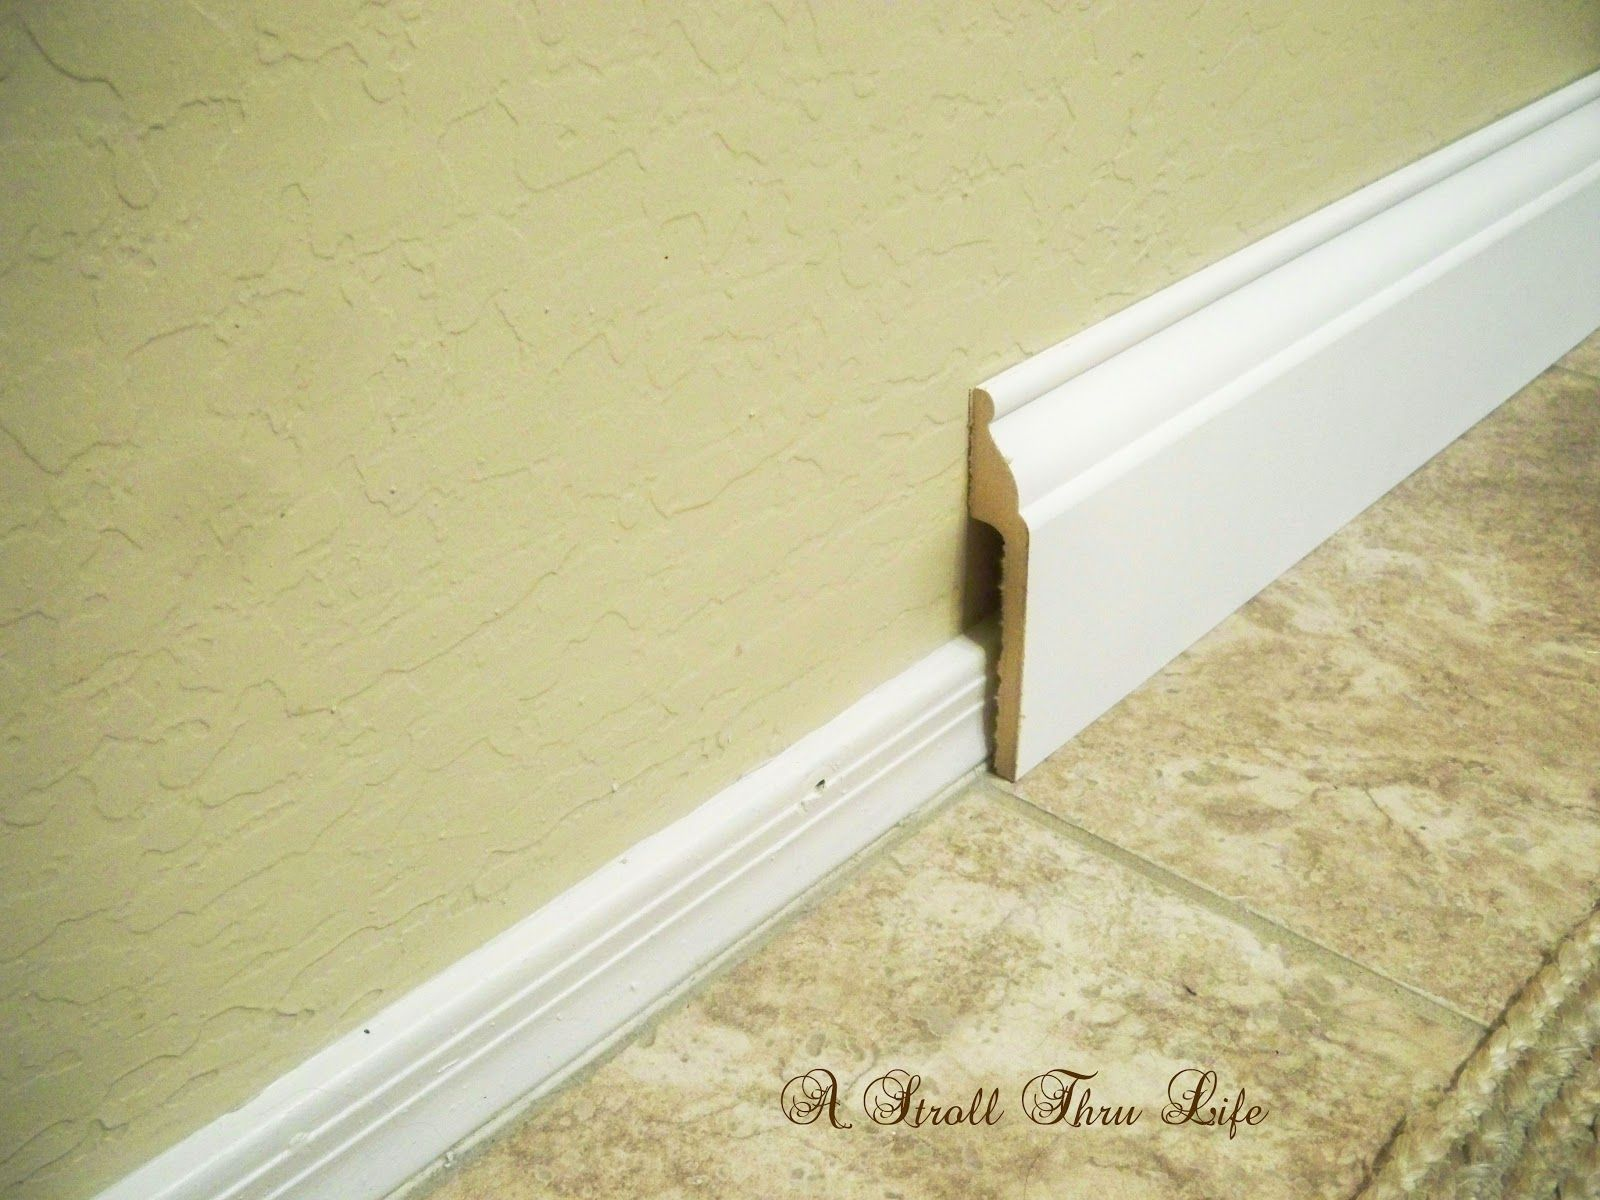 How to install baseboards over carpet -  Over Carpet Middot 1000 Images About Baseboard Trim Moulding On Shoe Molding Baseboardoldings